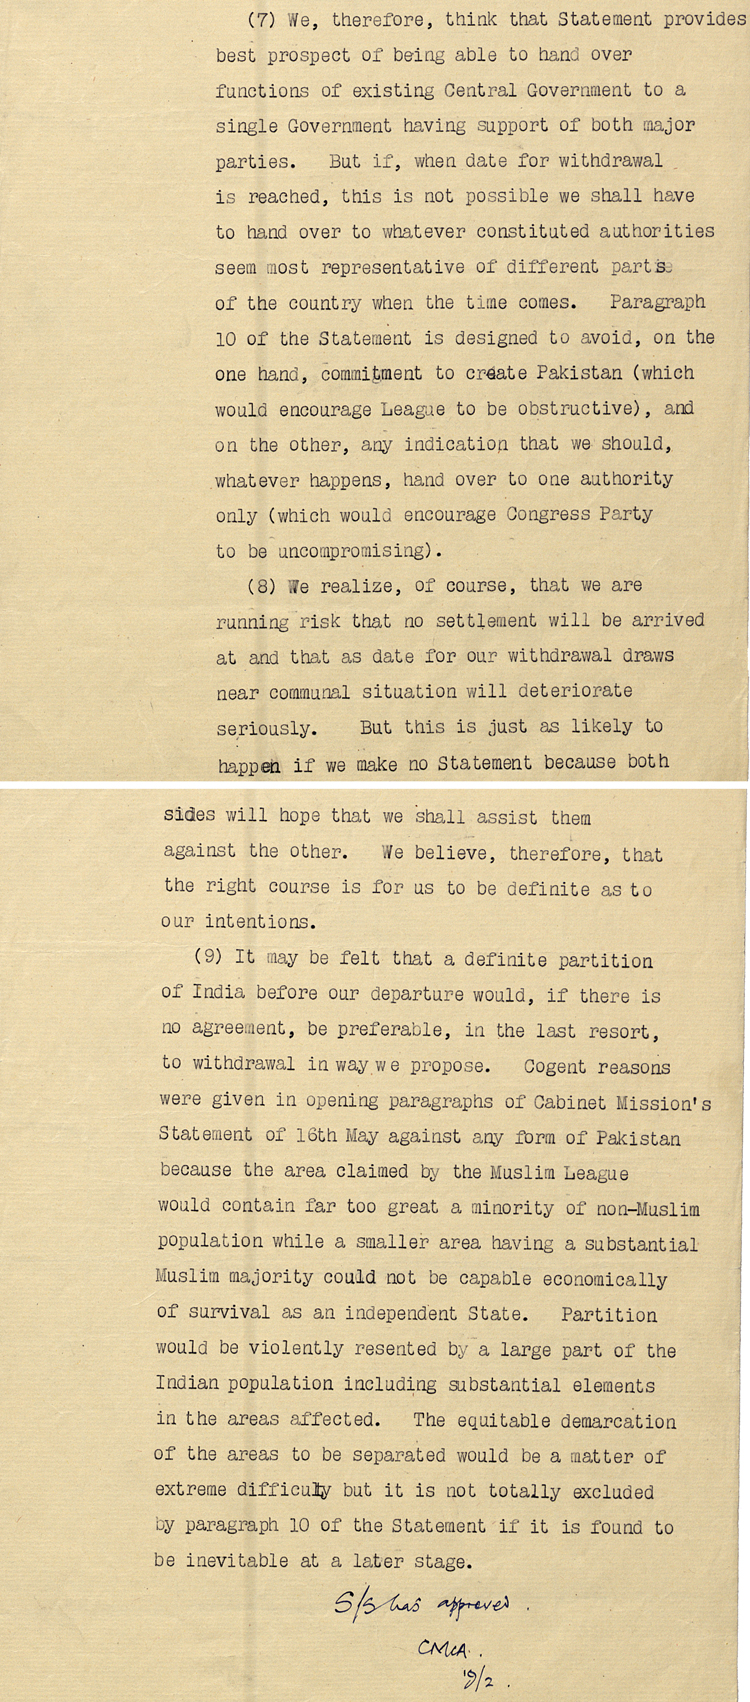 Secretary of State's comments on India policy for British Ambassador in Washington, 19th February 1947 (FO 371/63529)